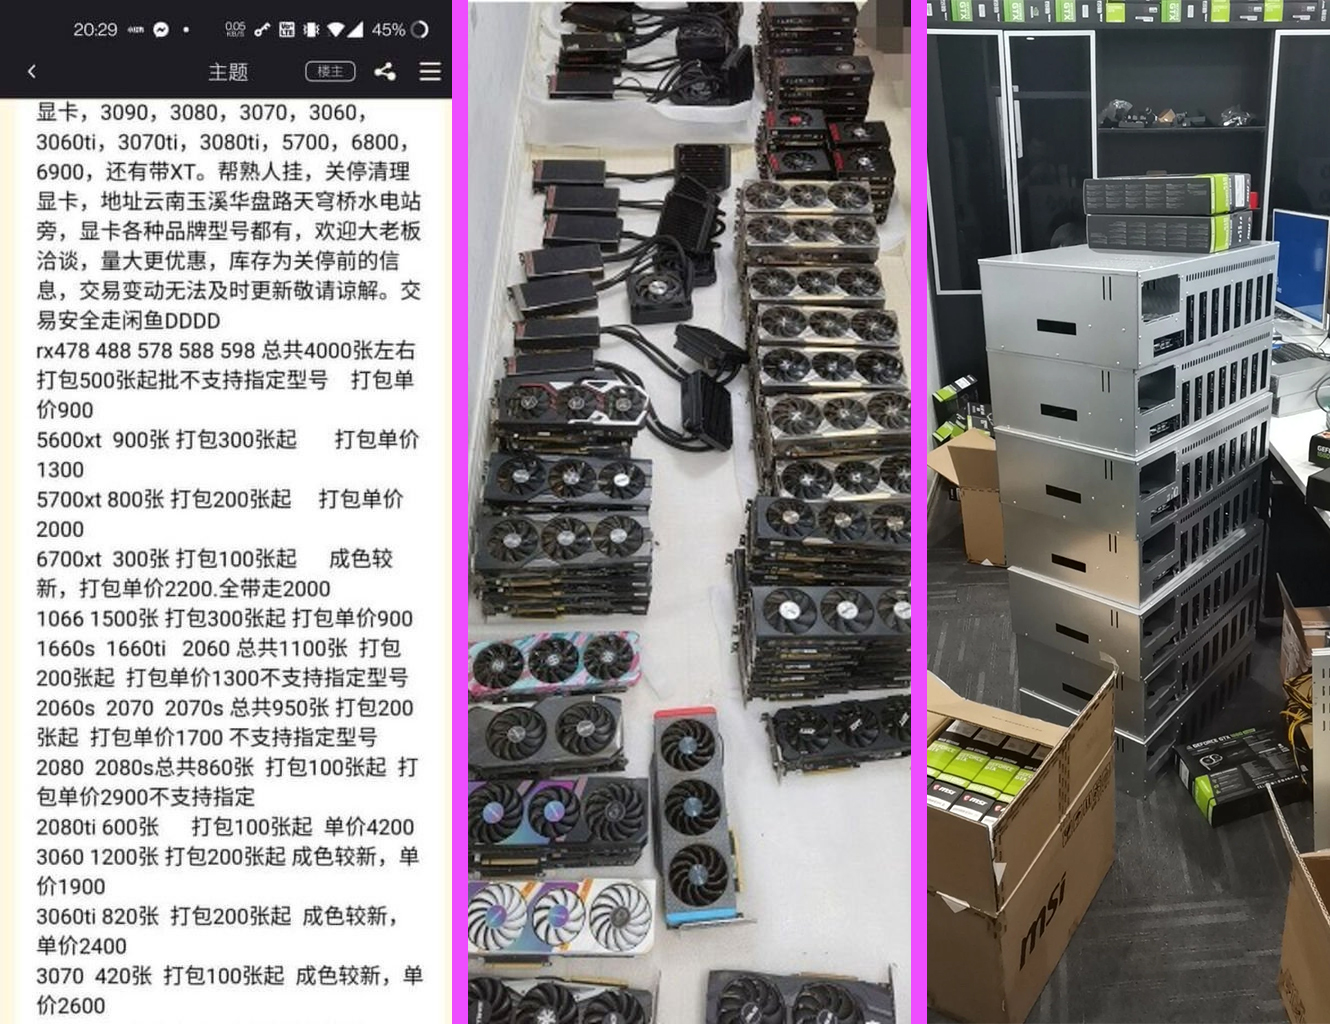 Cryptominers In China Selling Off Graphics Cards In Bulk